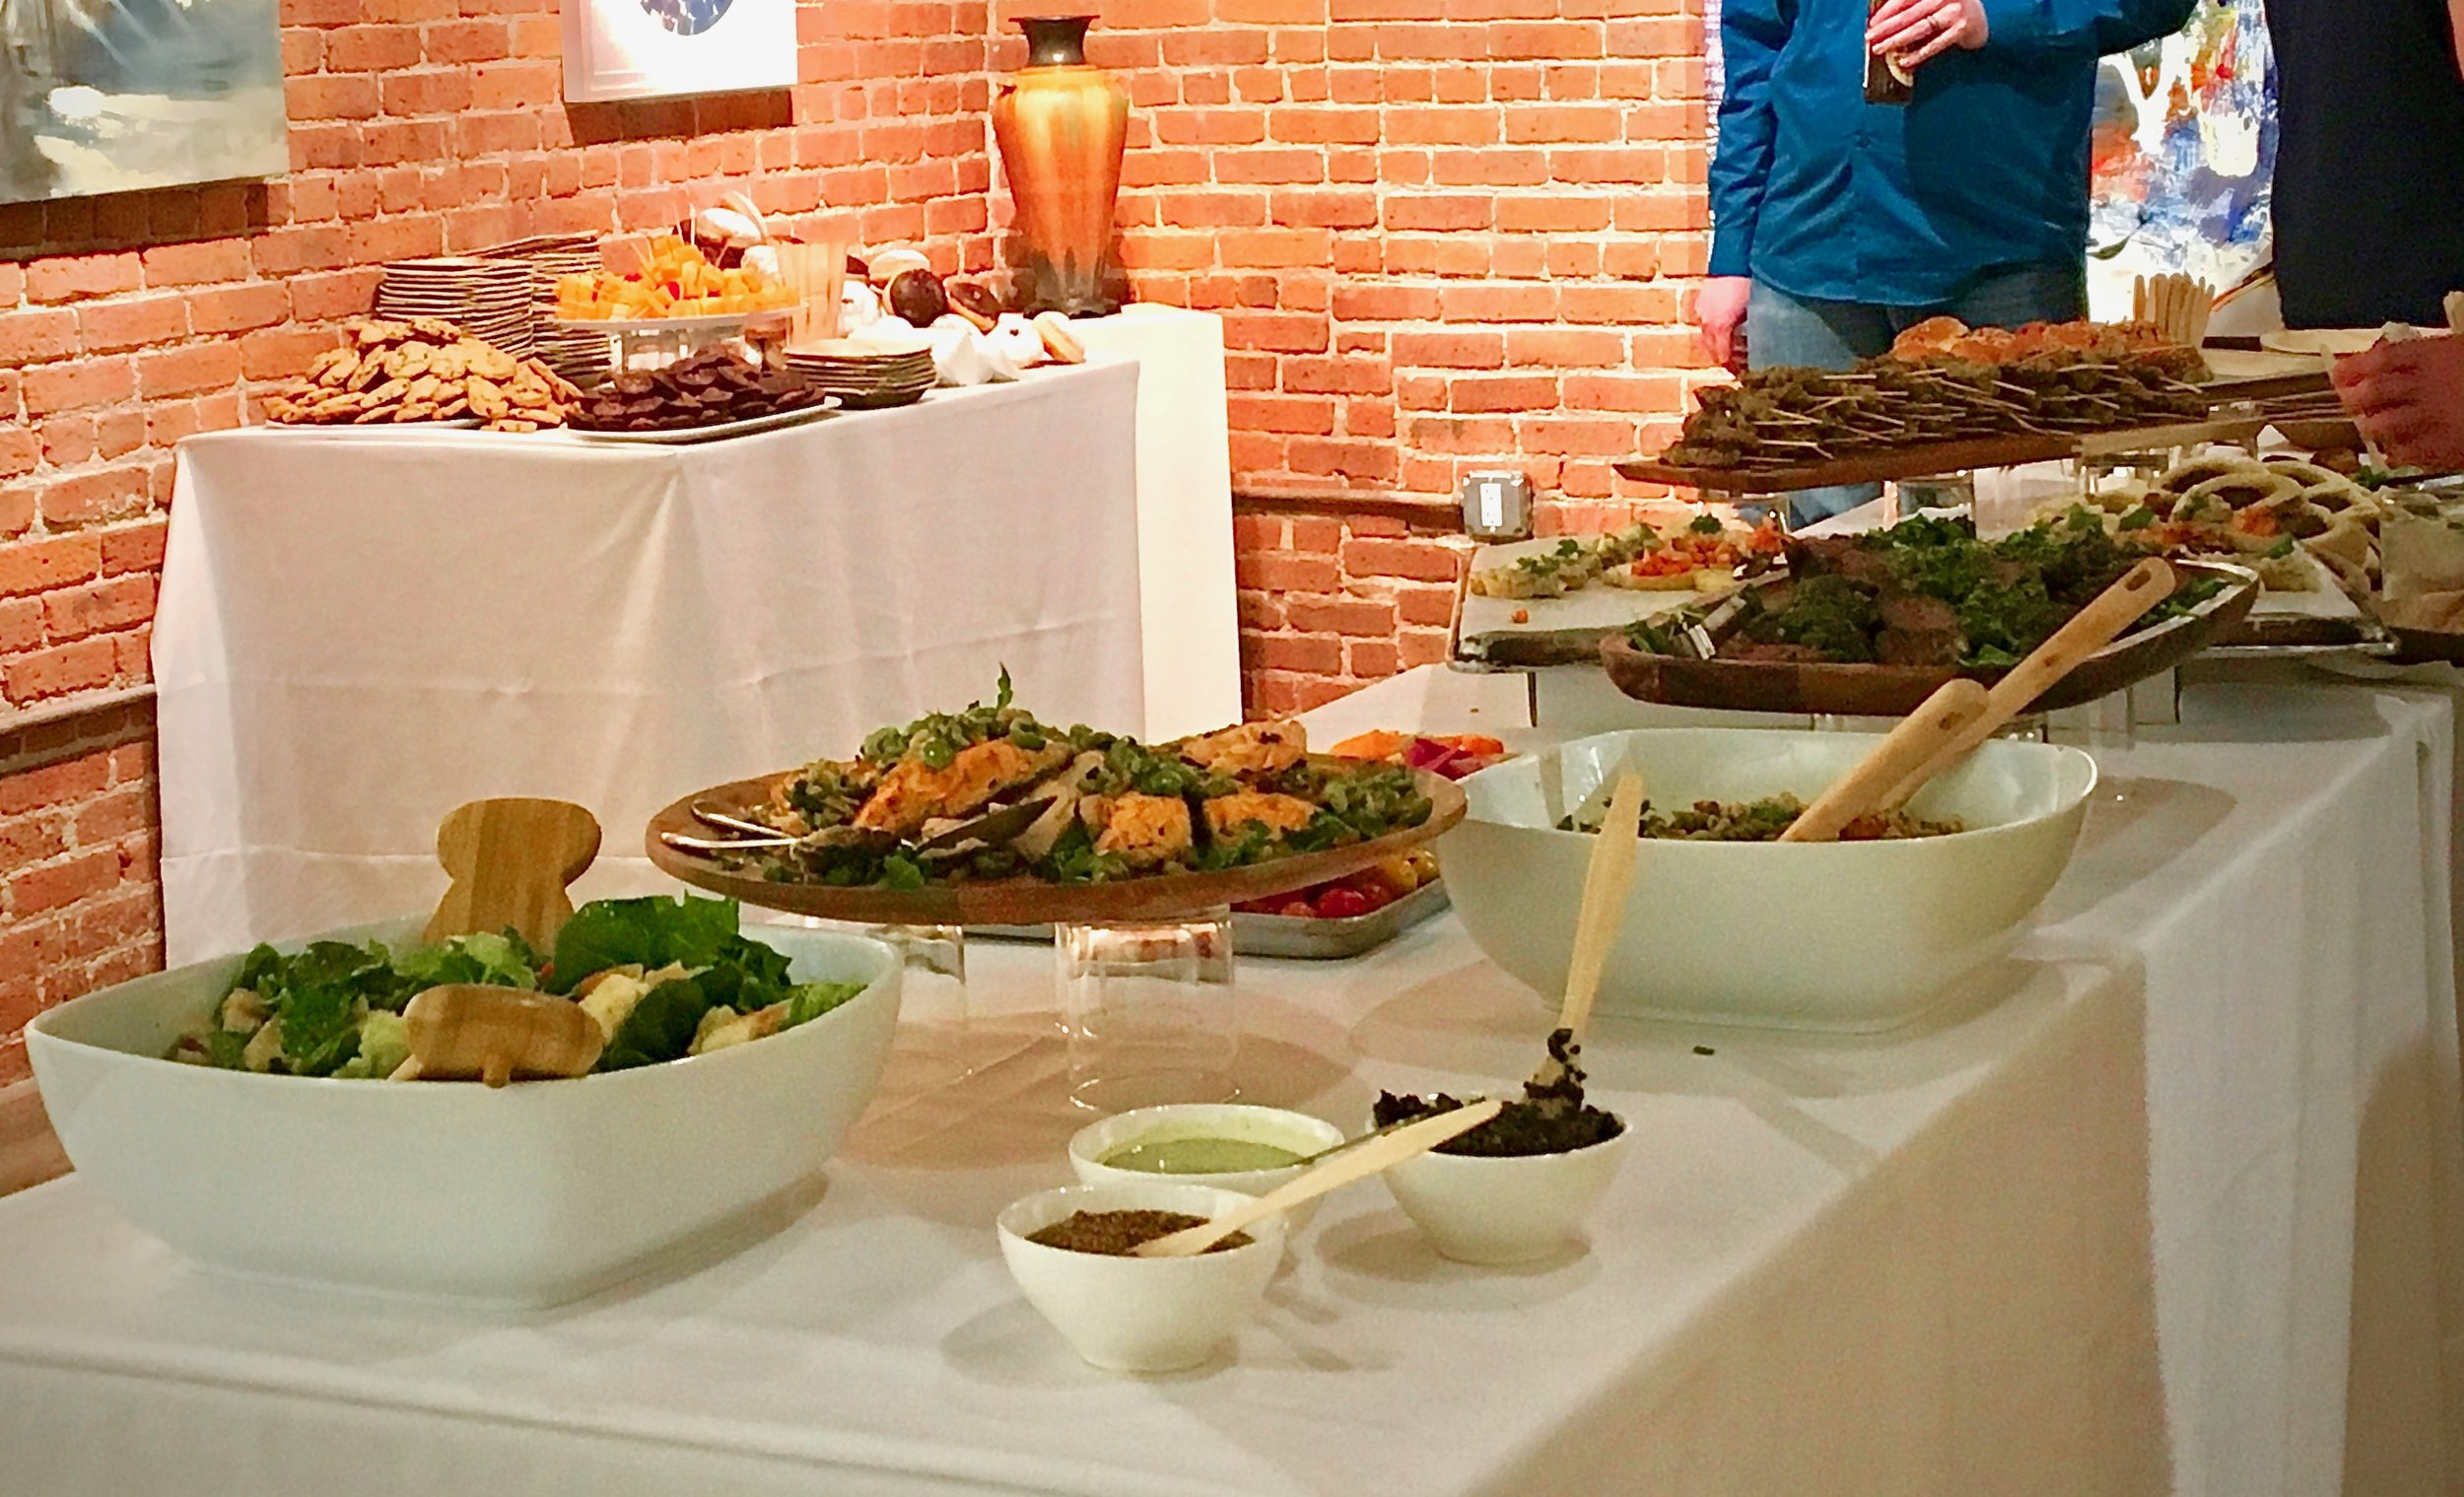 December 5, 2018 Corporate Reception at Novado Gallery catered by Chi-Chi Eats. Photo:Noado Gallery, LLC.